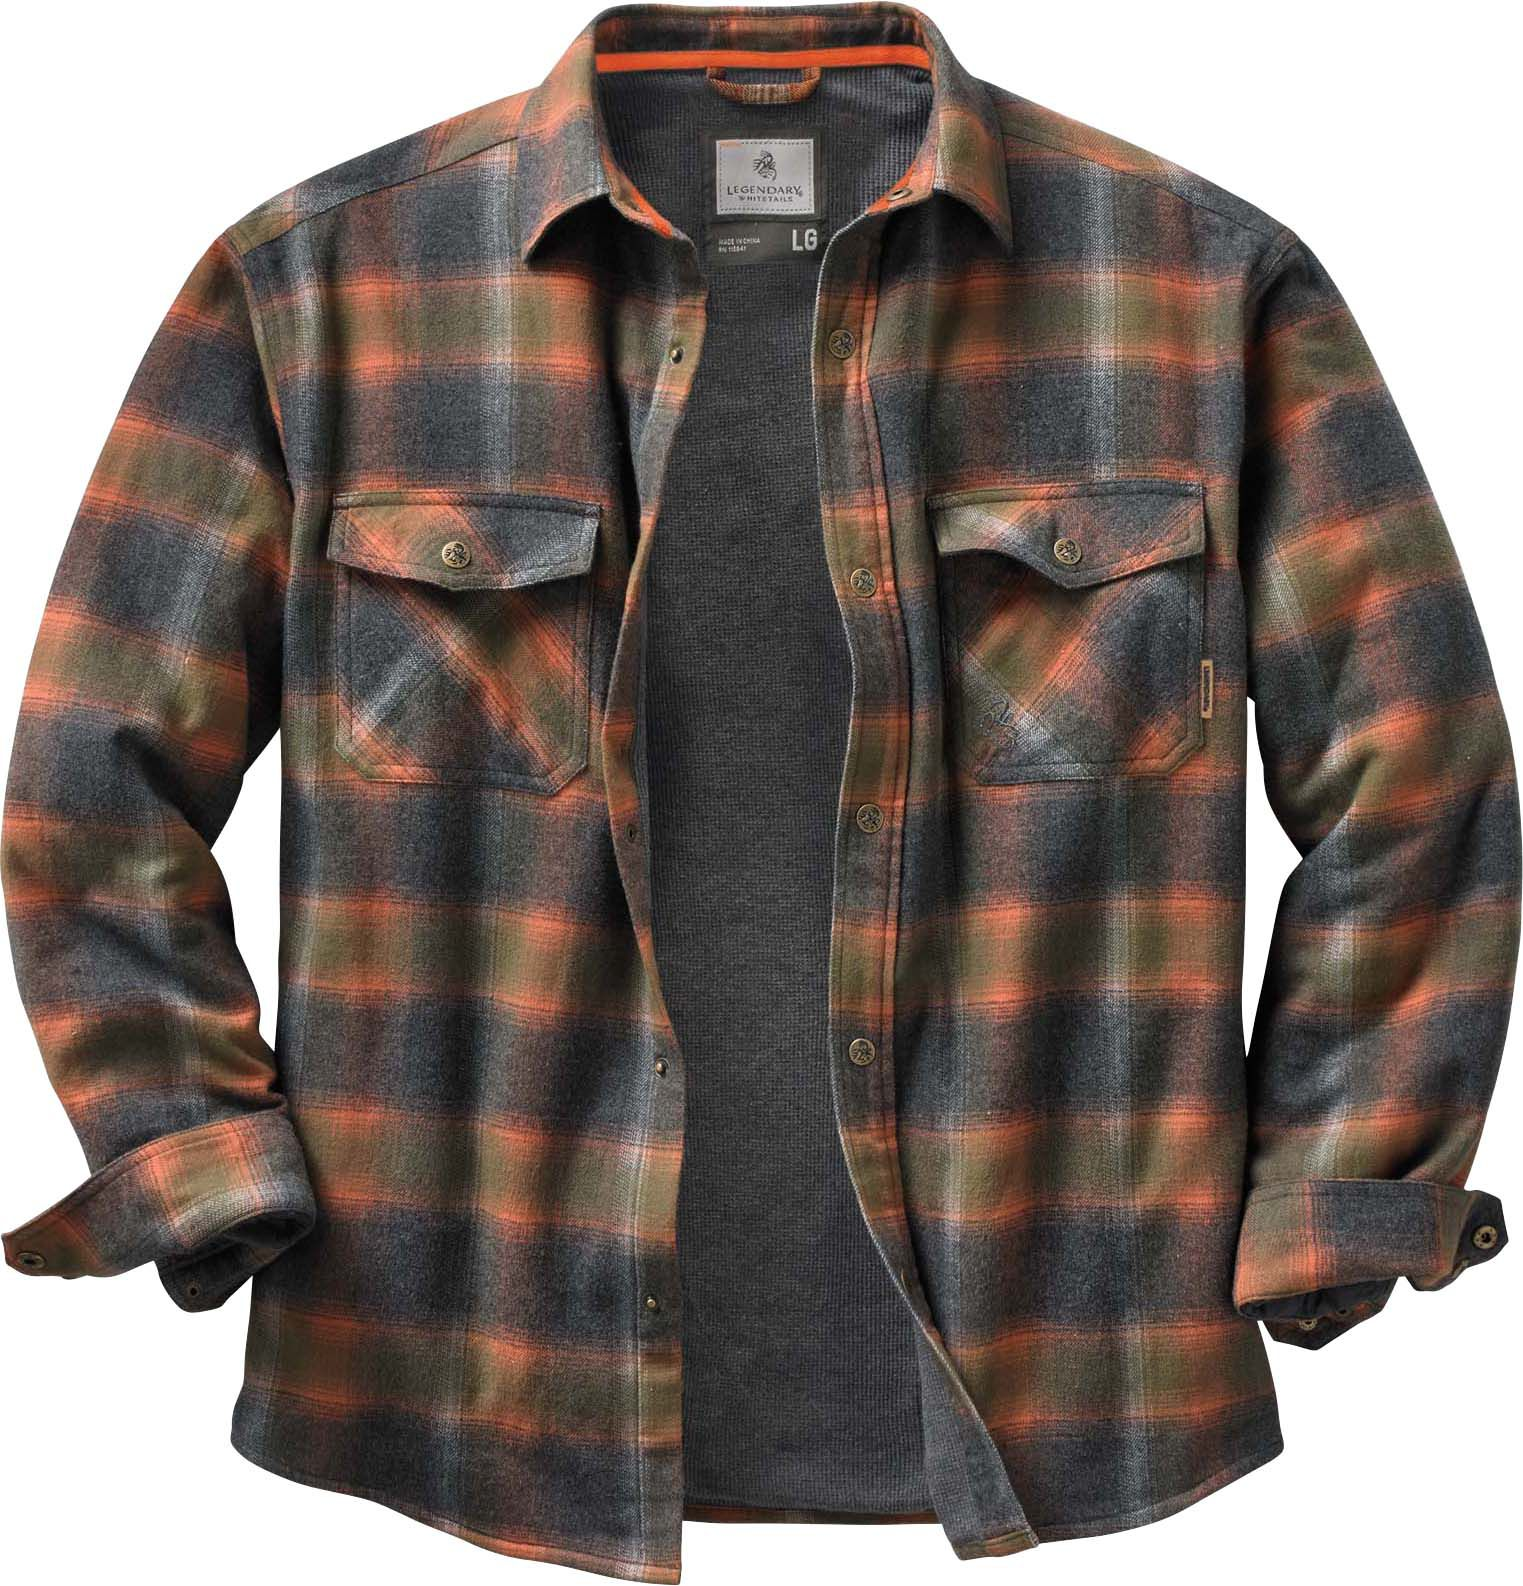 Archer Thermal Lined Shirt Jacket | Legendary Whitetails : quilted flannel shirt jacket - Adamdwight.com